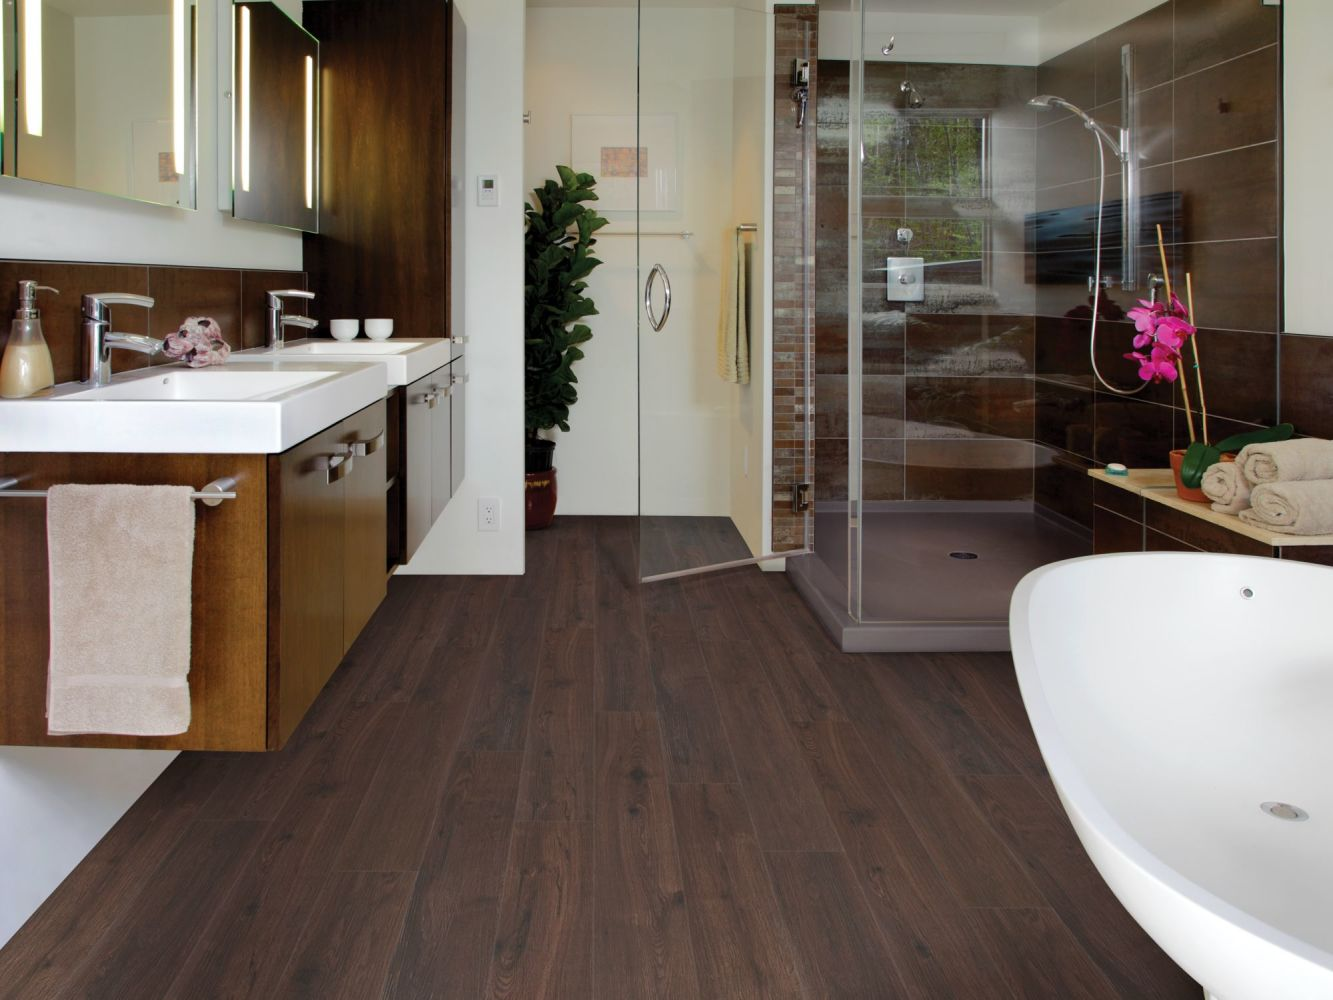 Shaw Floors Vinyl Residential Soho Marrone 00724_0245V